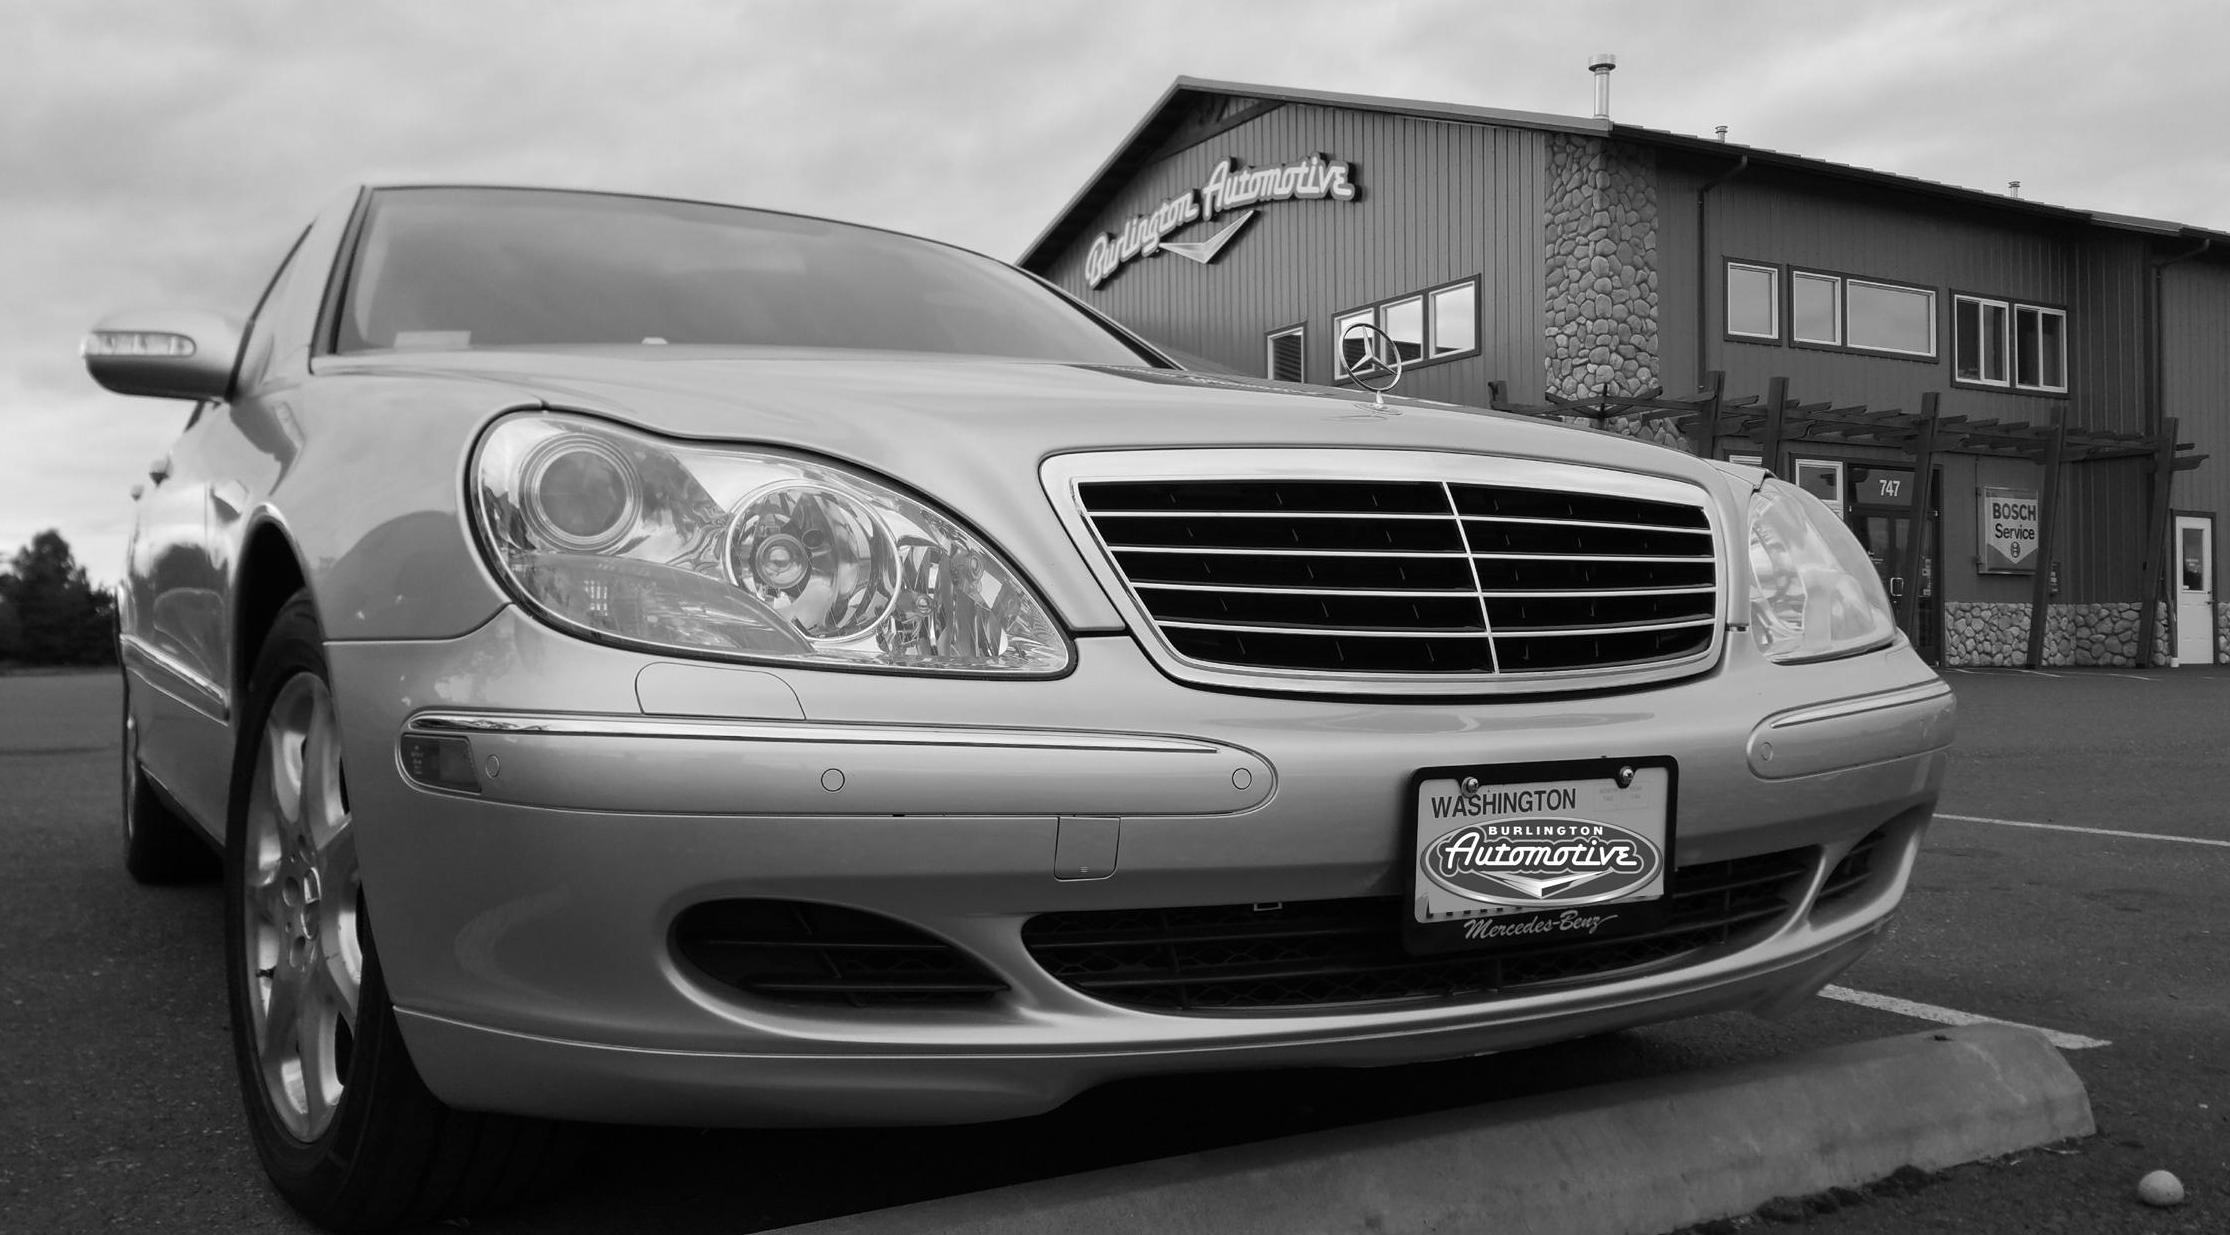 Burlington Washington Mercedes